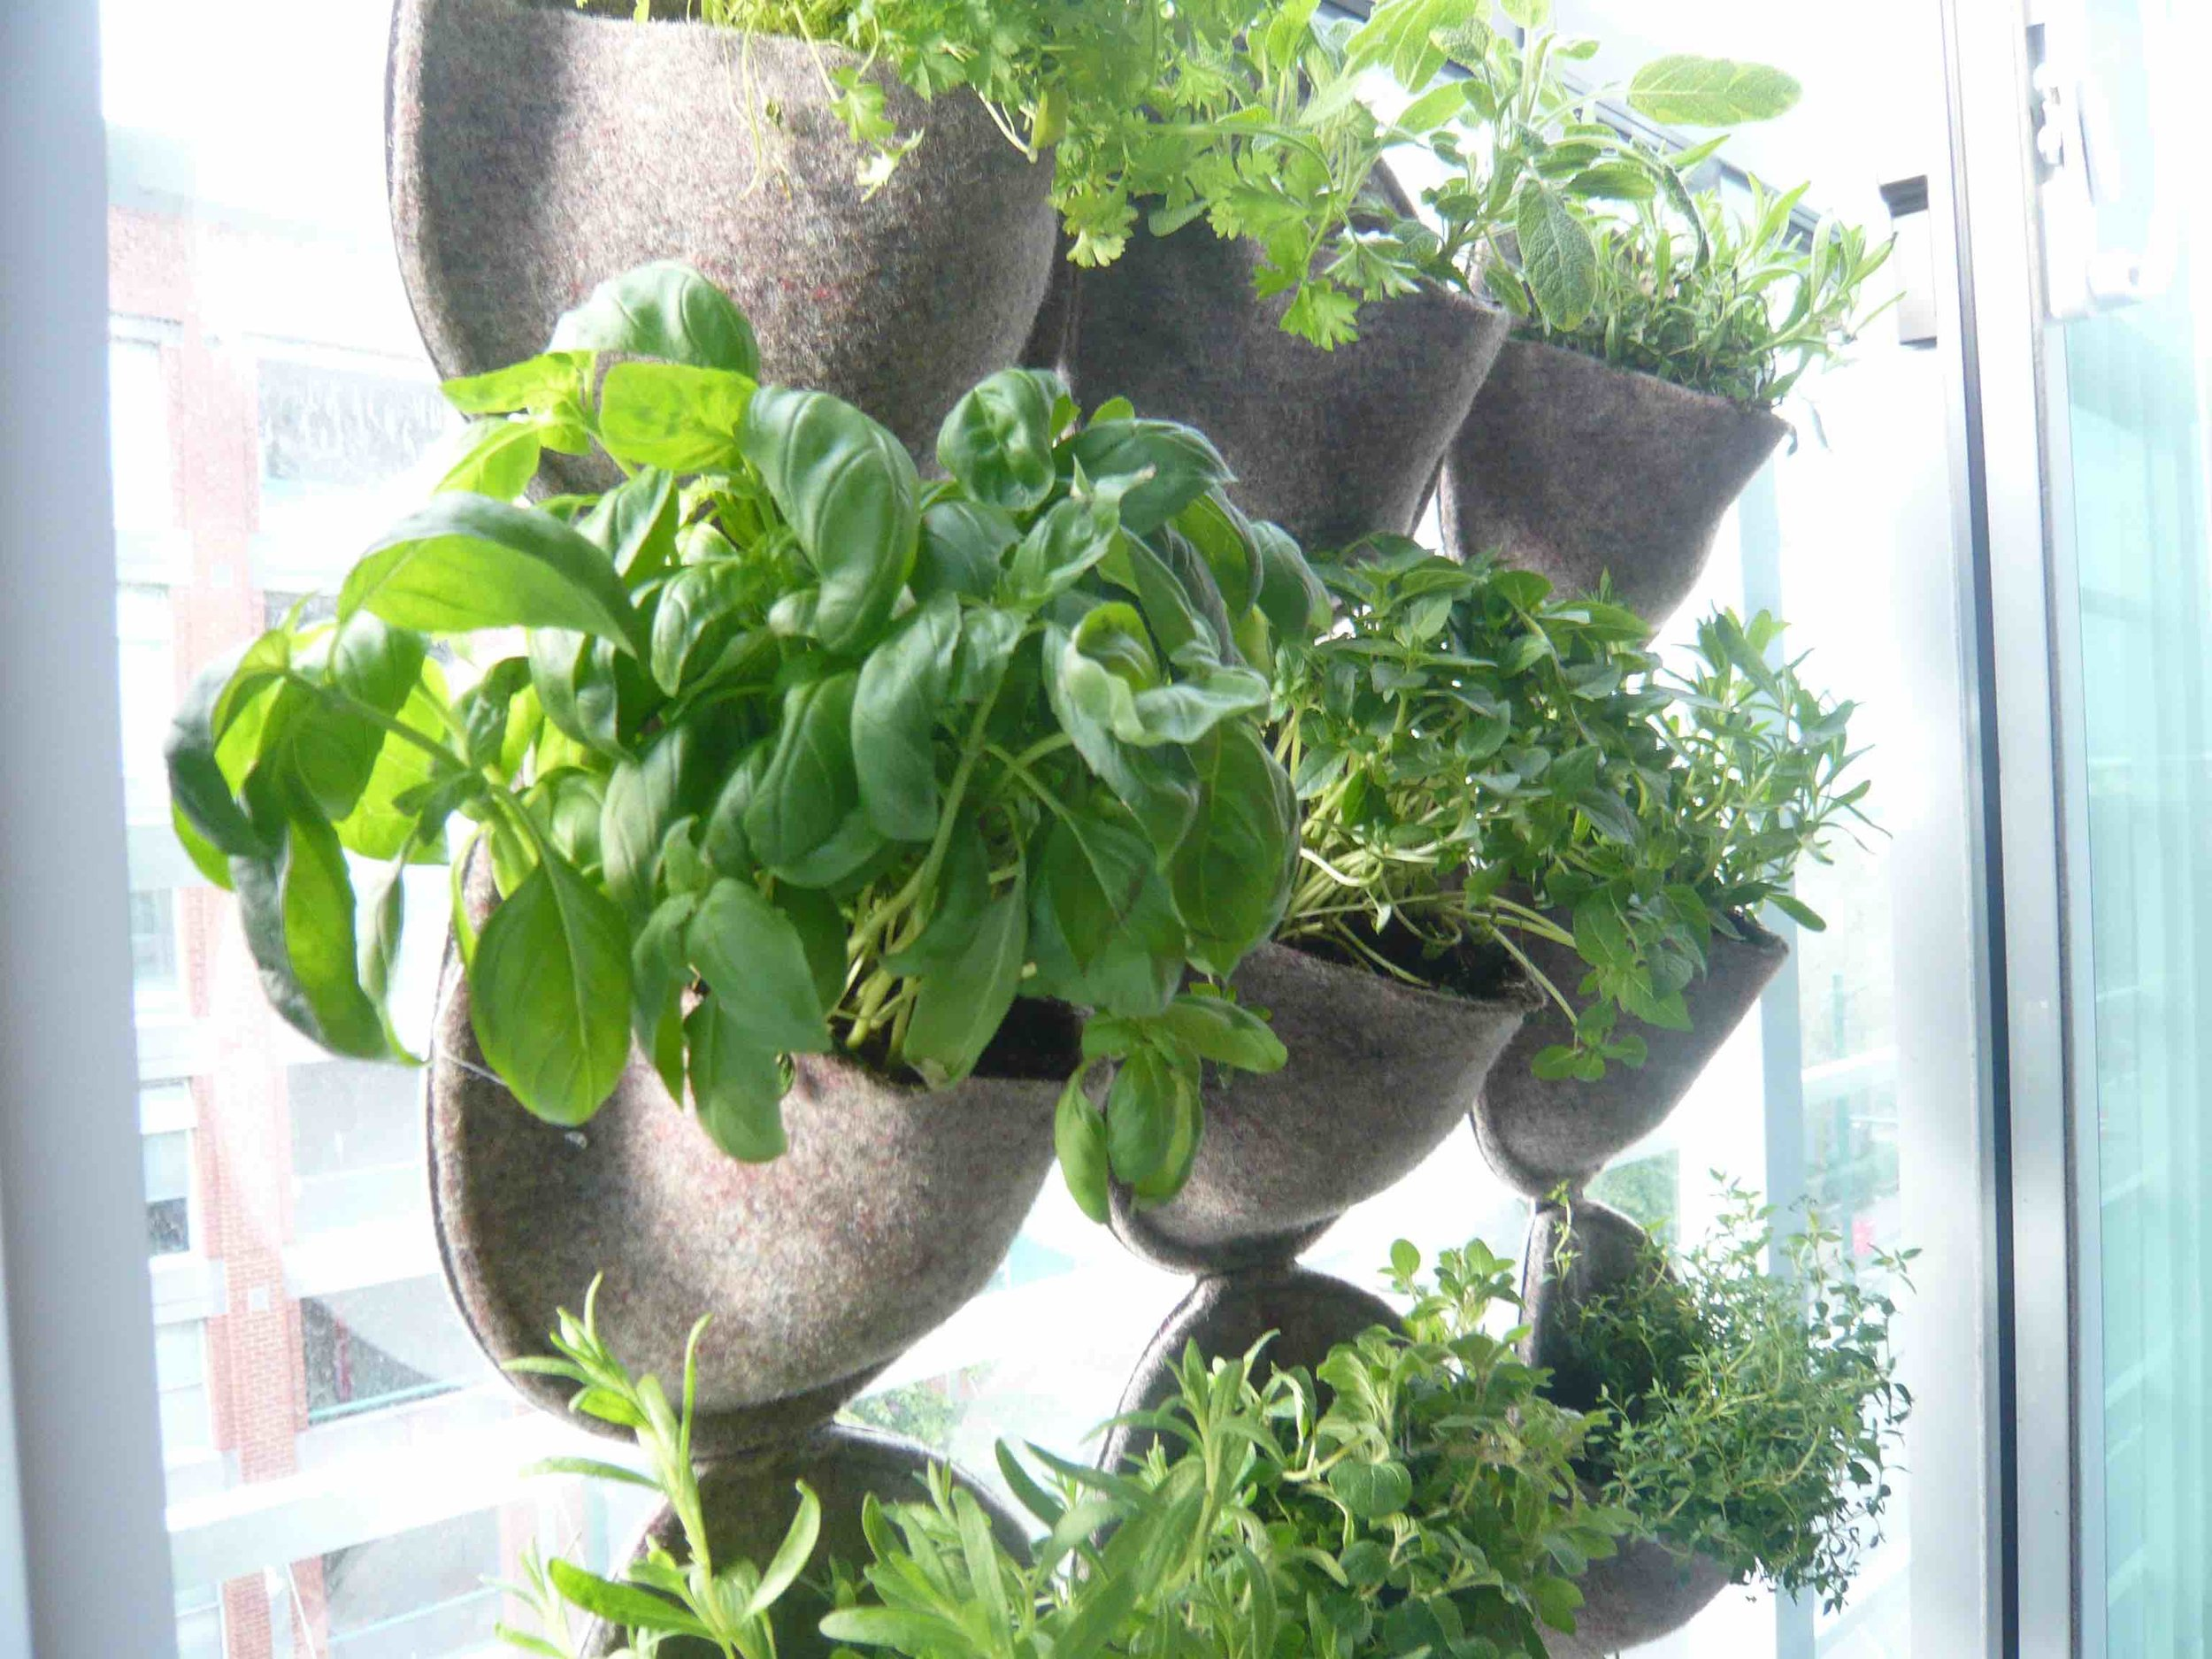 Herban planter for balconies and other small spaces.